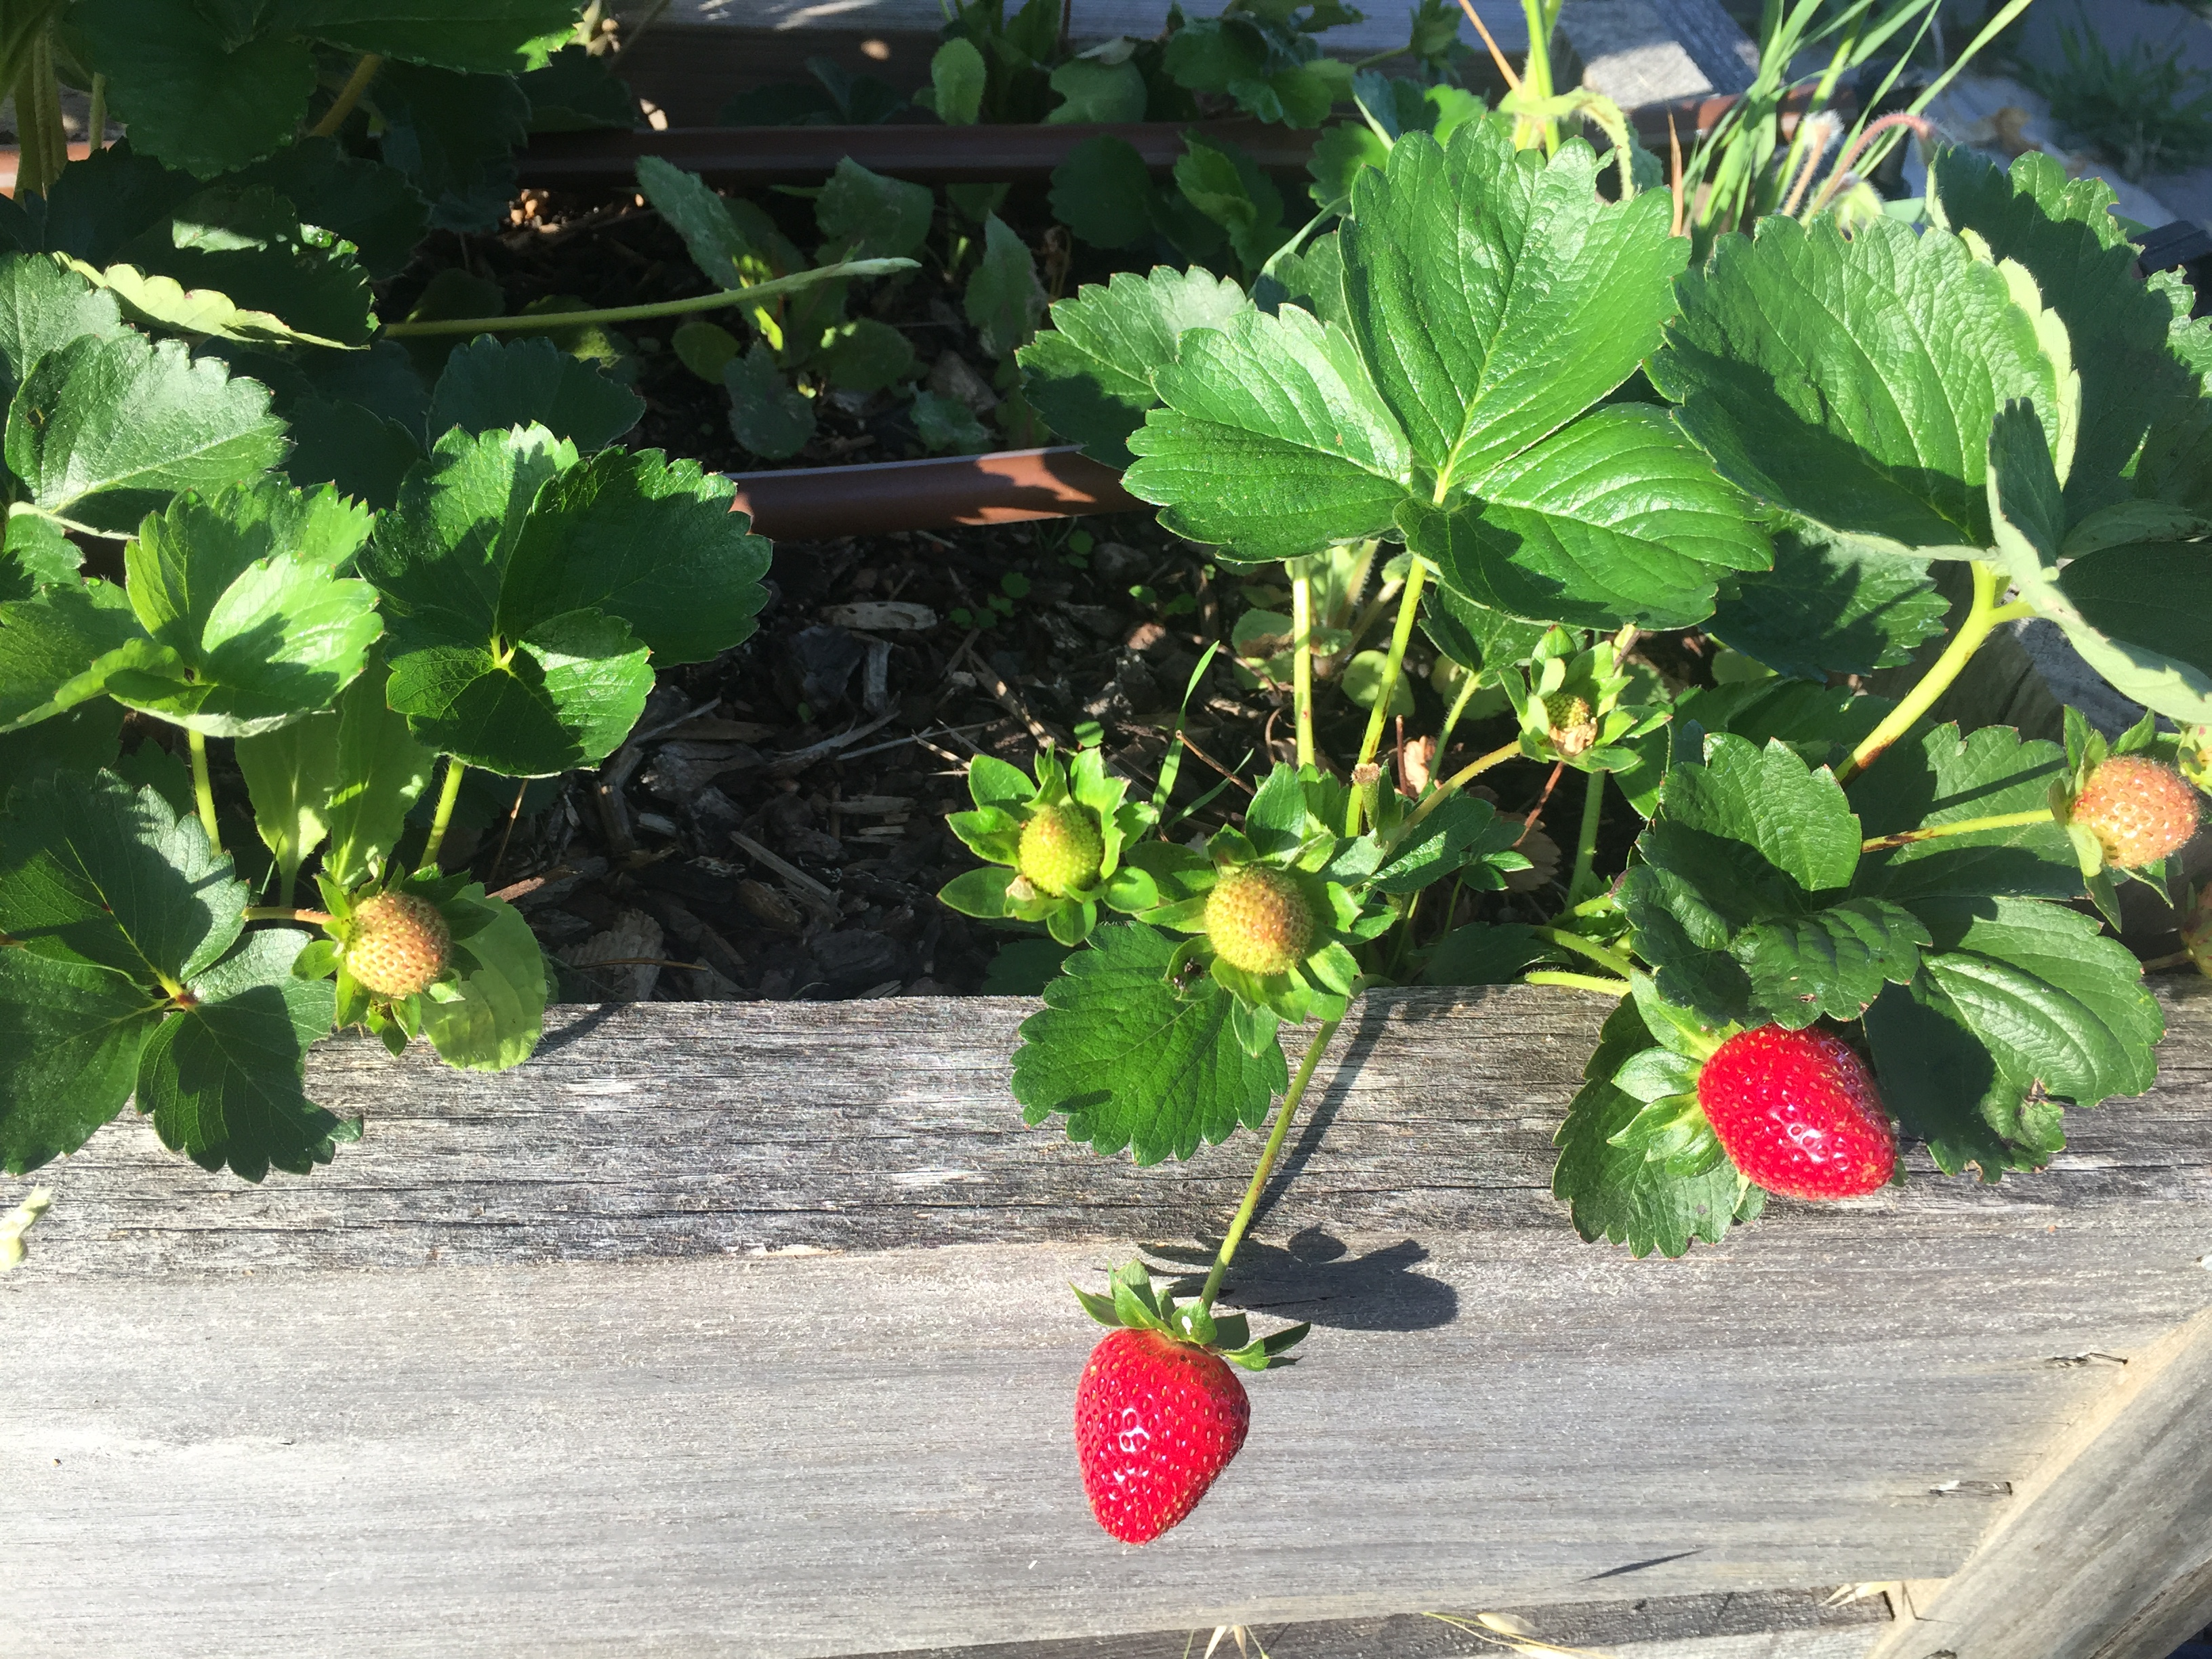 ESummer strawberries